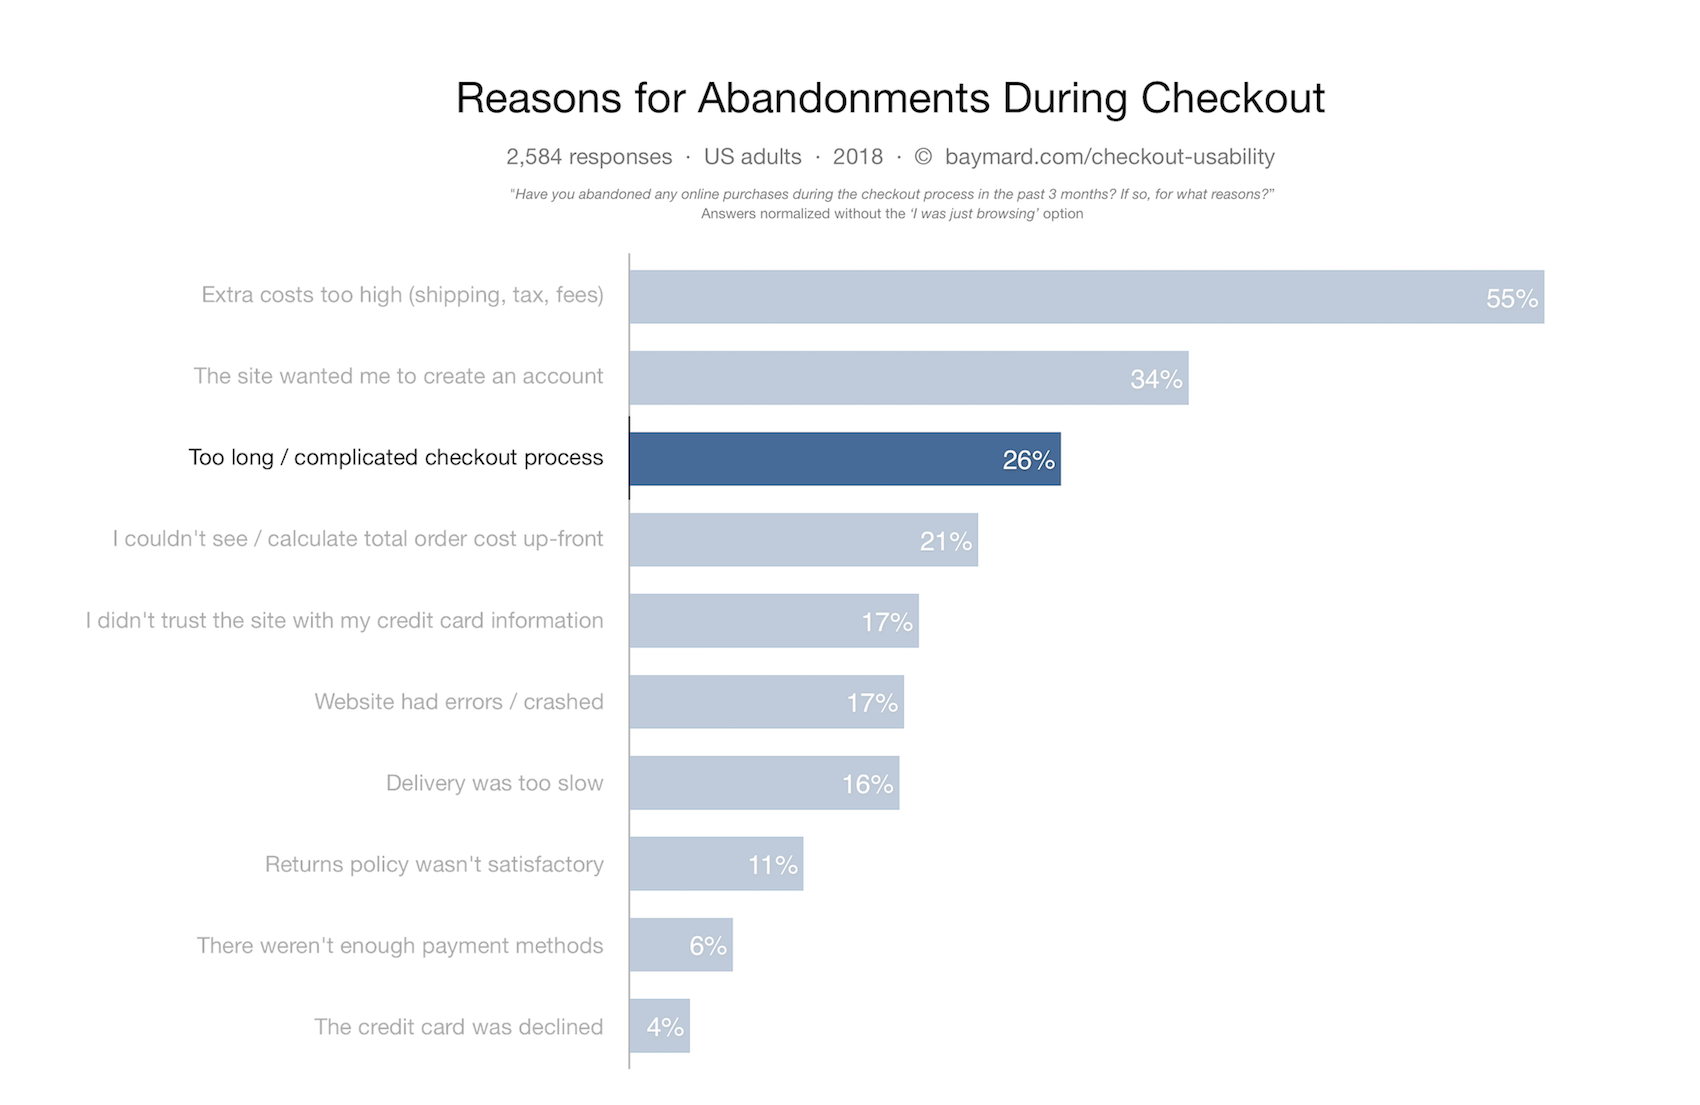 hight resolution of at the same time we ve documented that 26 of users have abandoned orders due to a too long complicated checkout process